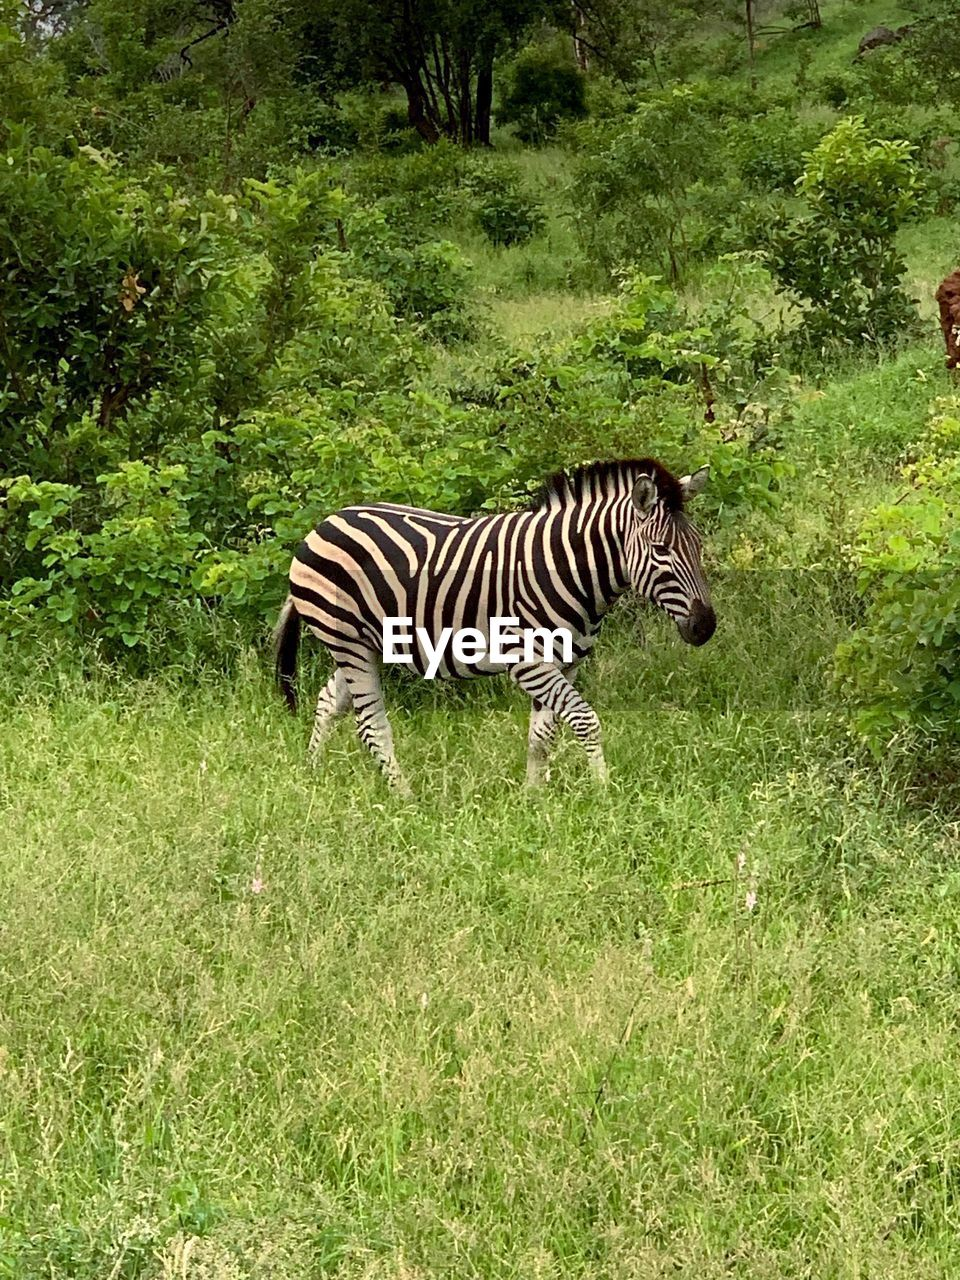 animal themes, animal, animal wildlife, animals in the wild, plant, mammal, grass, zebra, striped, land, one animal, nature, field, vertebrate, safari, no people, green color, animal markings, tree, outdoors, herbivorous